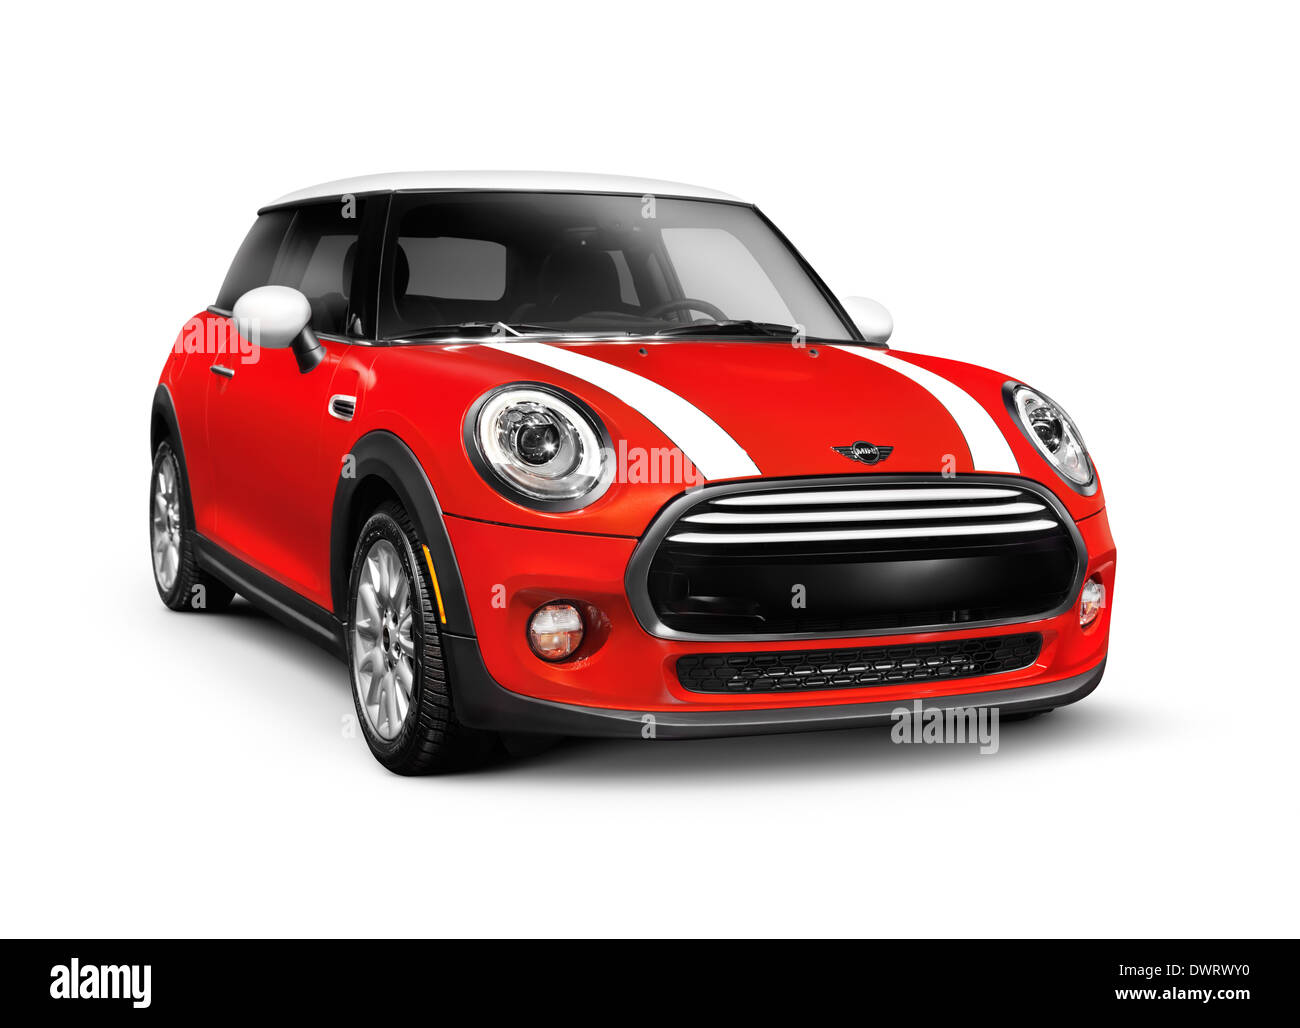 Red 2014 Mini Cooper Hardtop compact city car isolated on white background - Stock Image